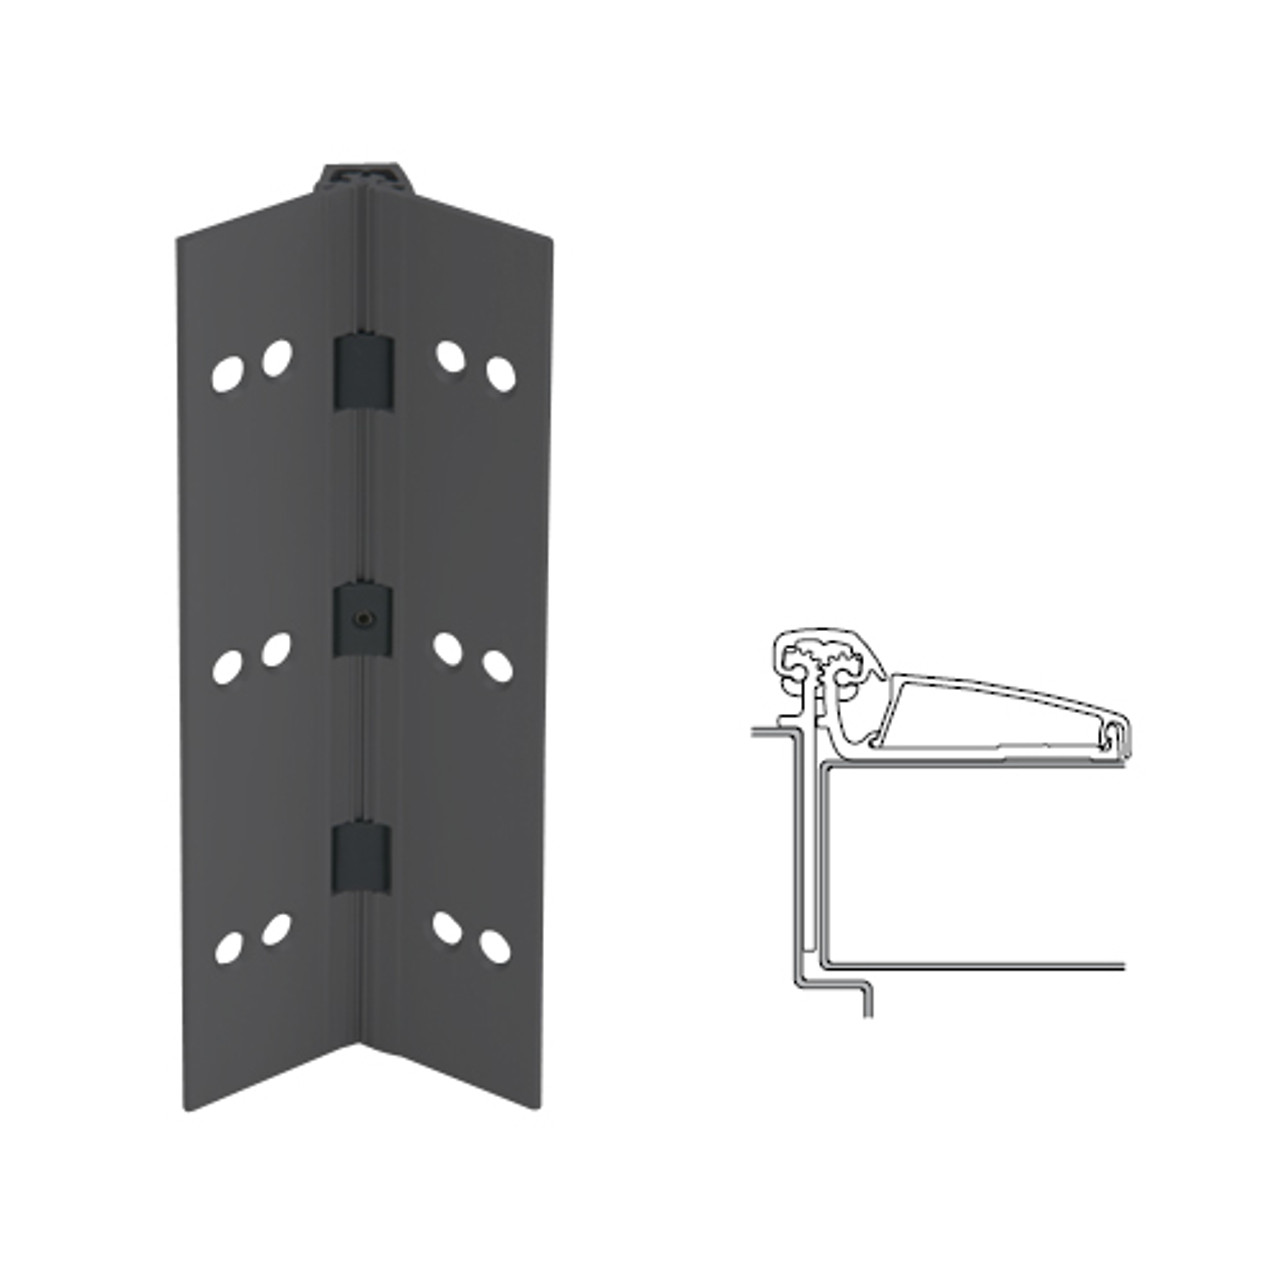 046XY-315AN-95-SECWDHM IVES Adjustable Half Surface Continuous Geared Hinges with Security Screws - Hex Pin Drive in Anodized Black